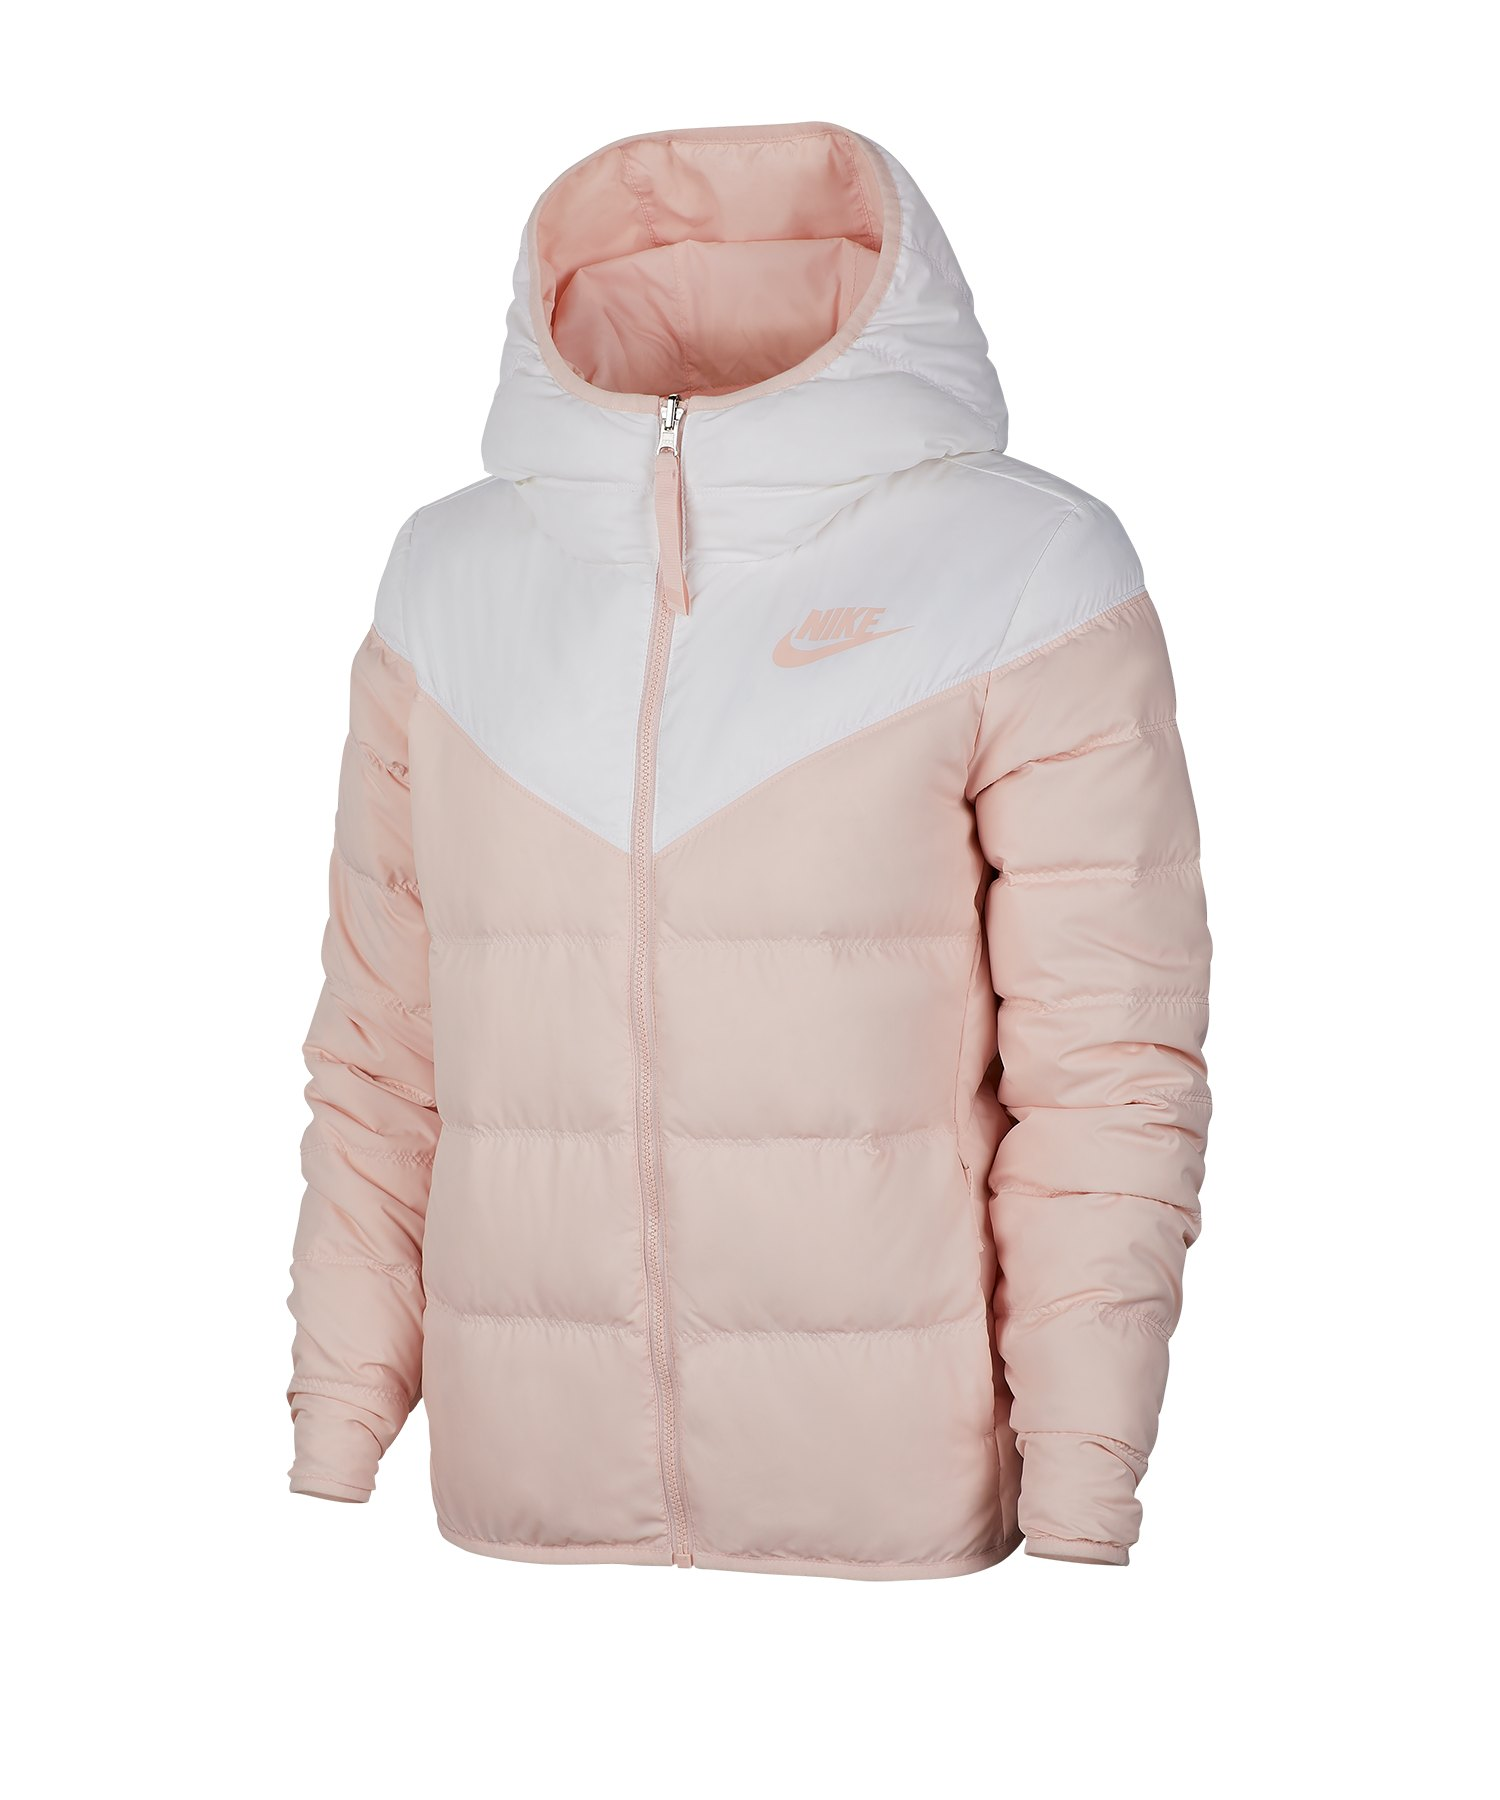 Nike Windrunner Down Fill Wendejacke Damen F101 - weiss